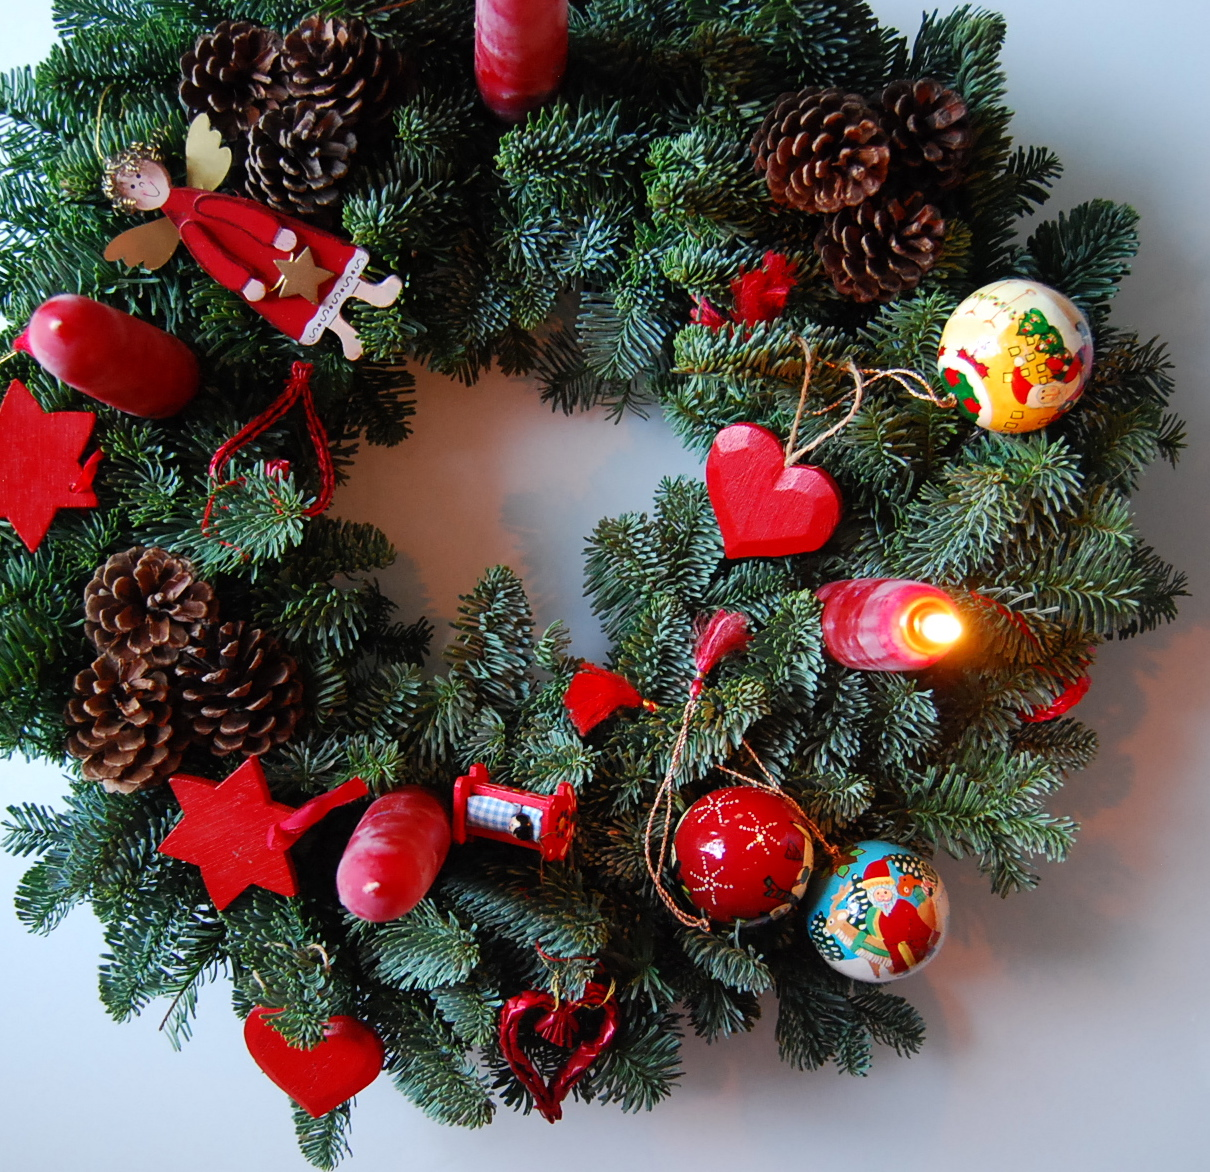 Advent Wreath Decorations Advent Preparing For Christmas